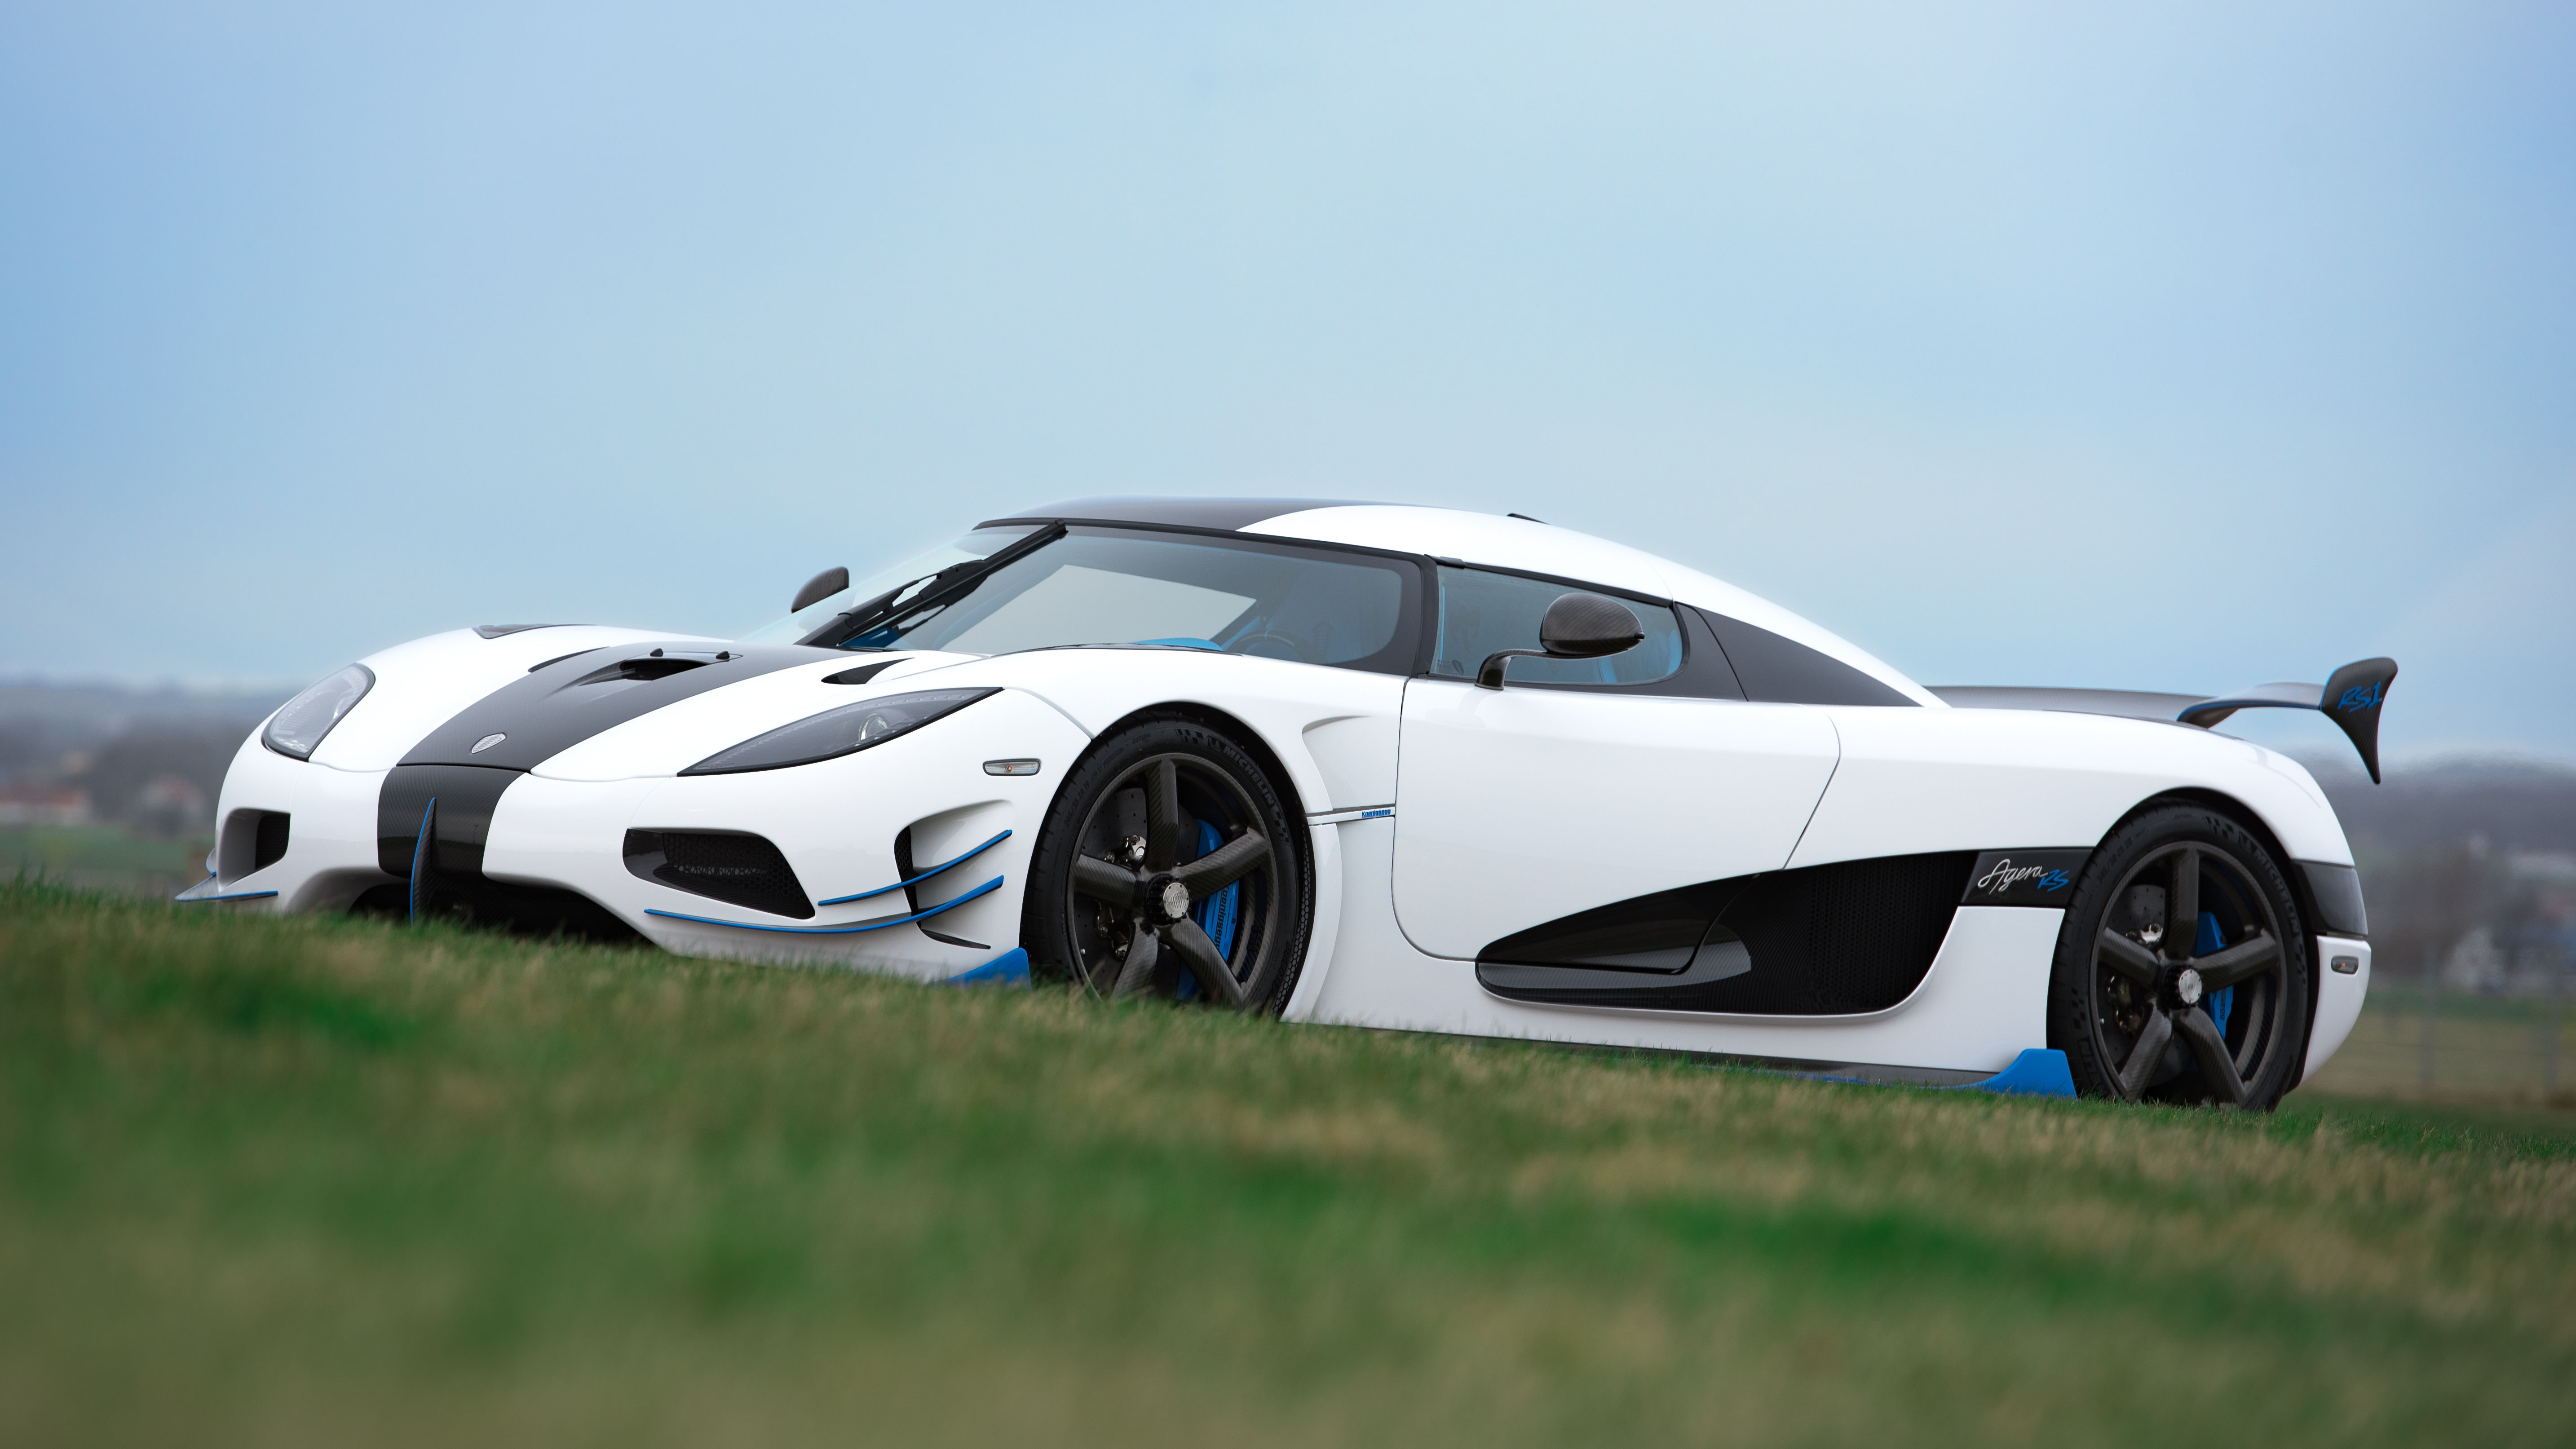 Lovely Behold The 1,360bhp Koenigsegg Agera RS1